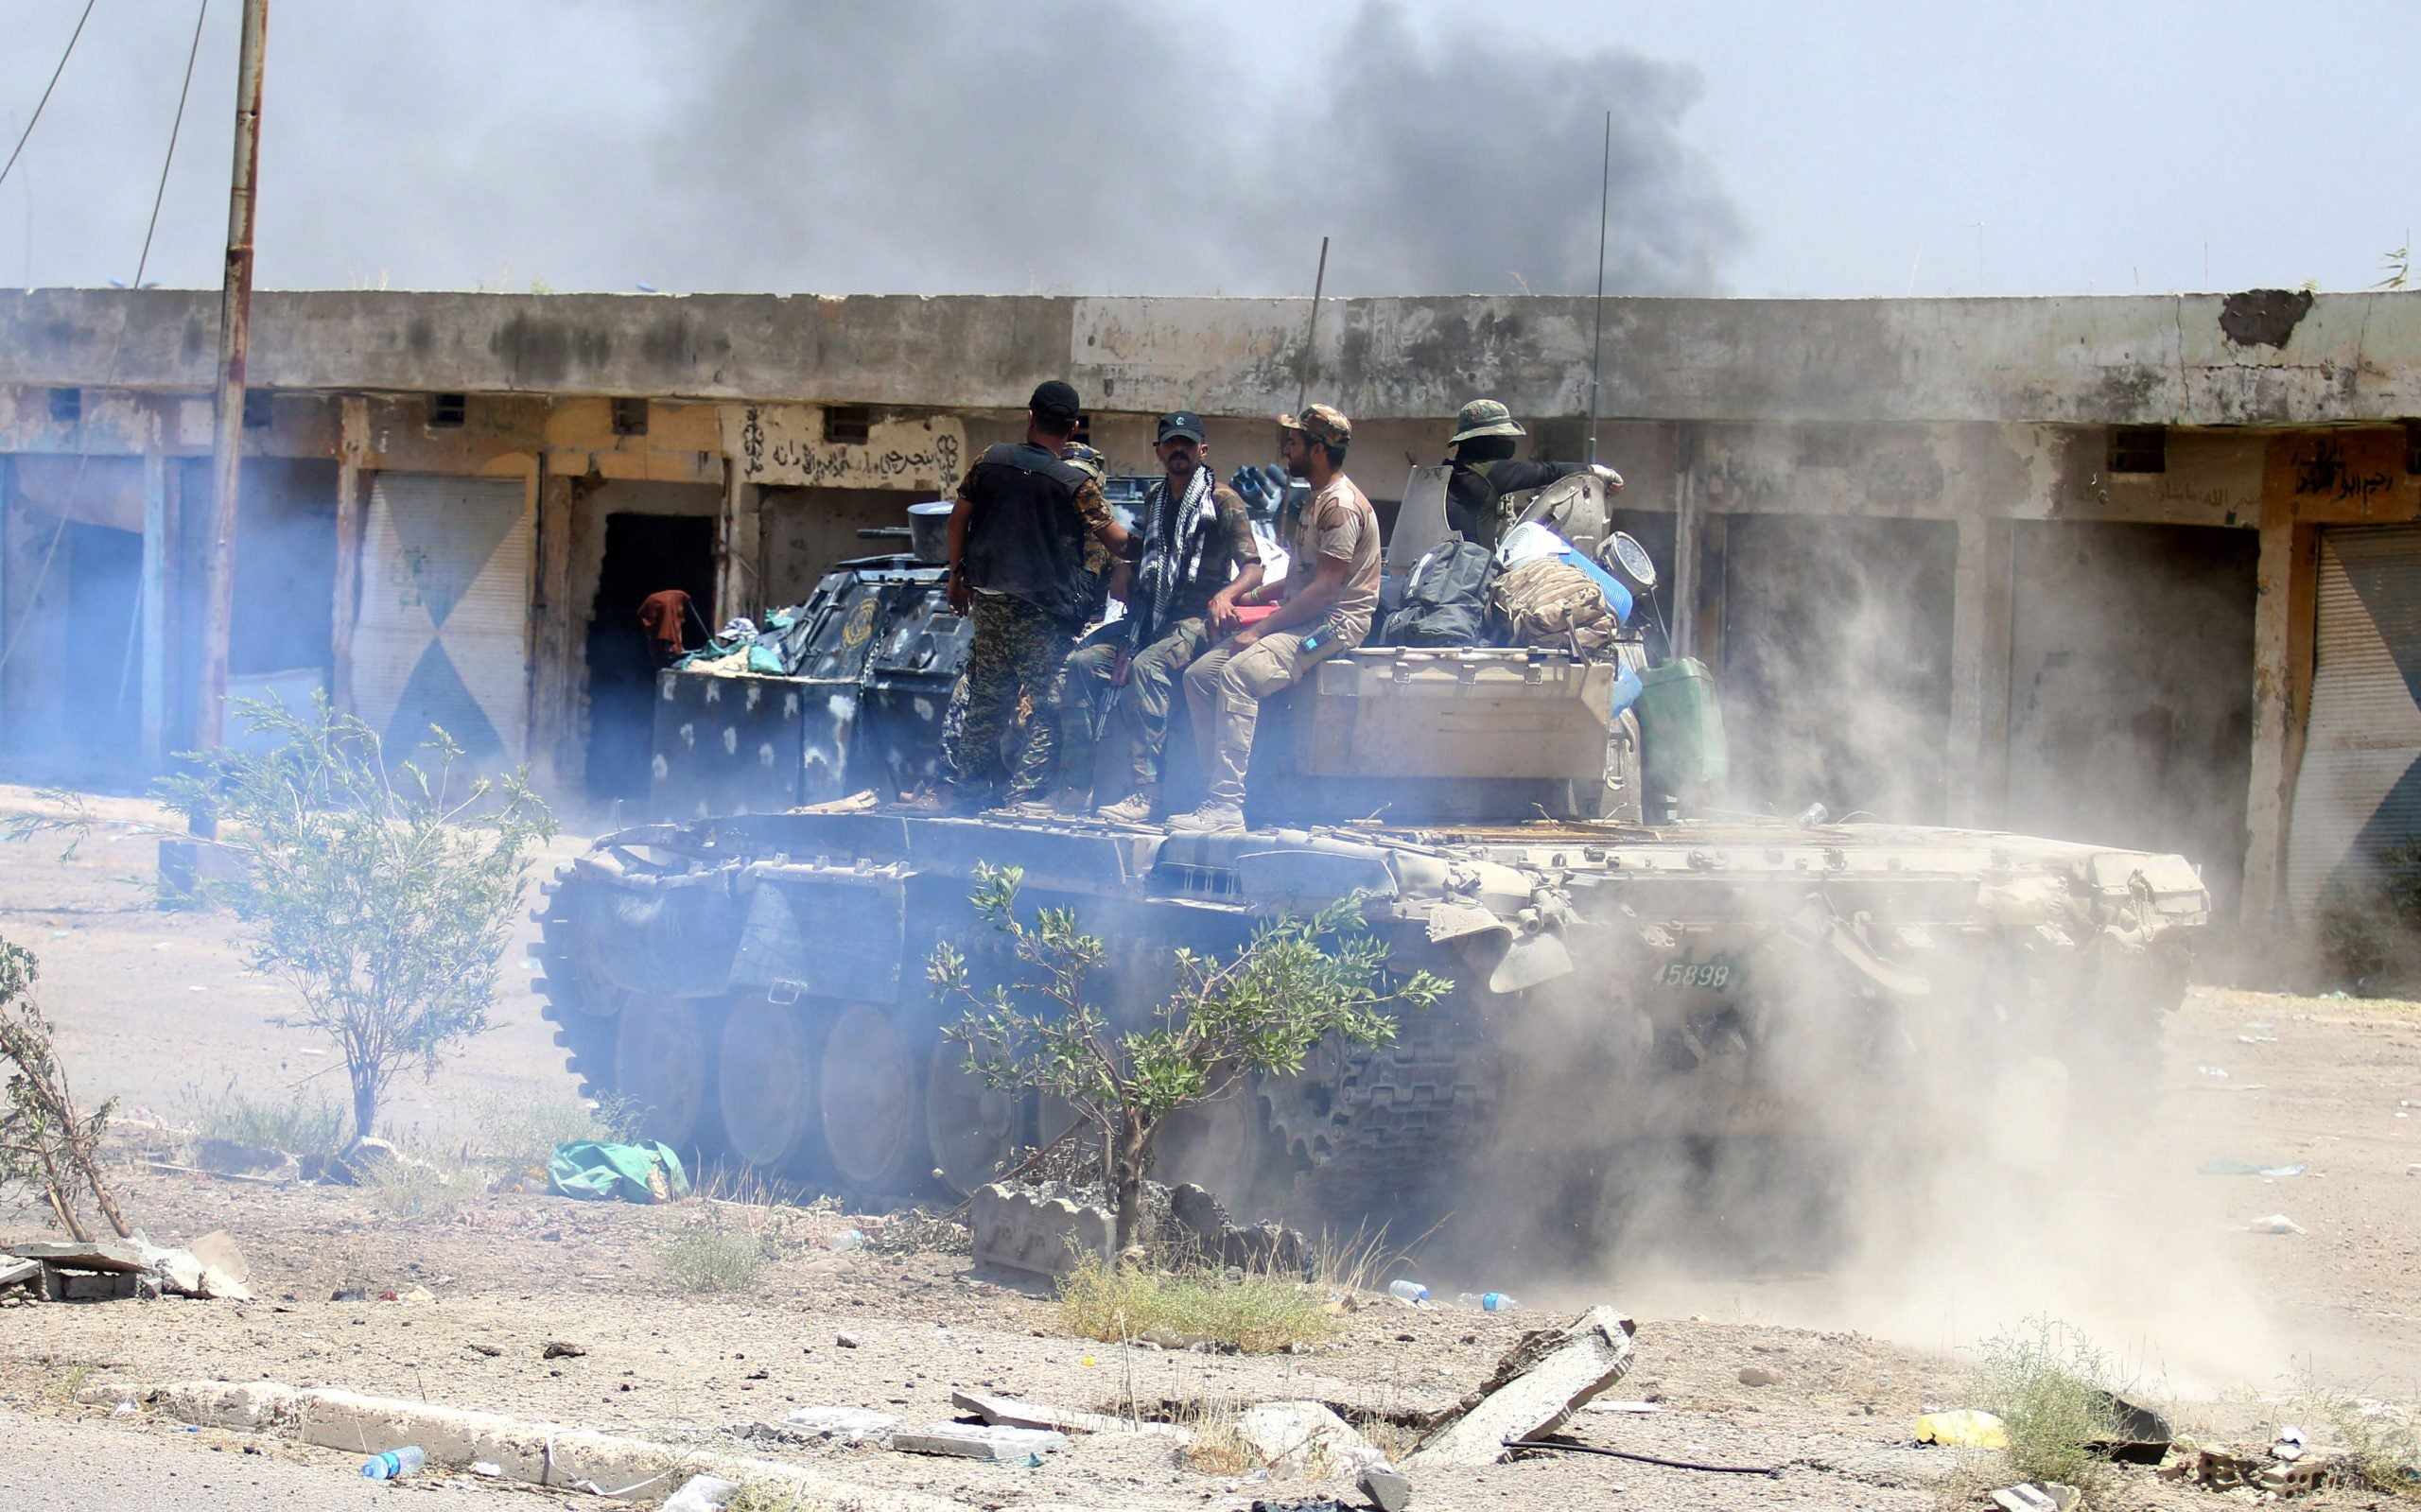 In Baghdad, a roadside bomb has killed 200 civilians – no wonder most Iraqis don't care about Chilcot